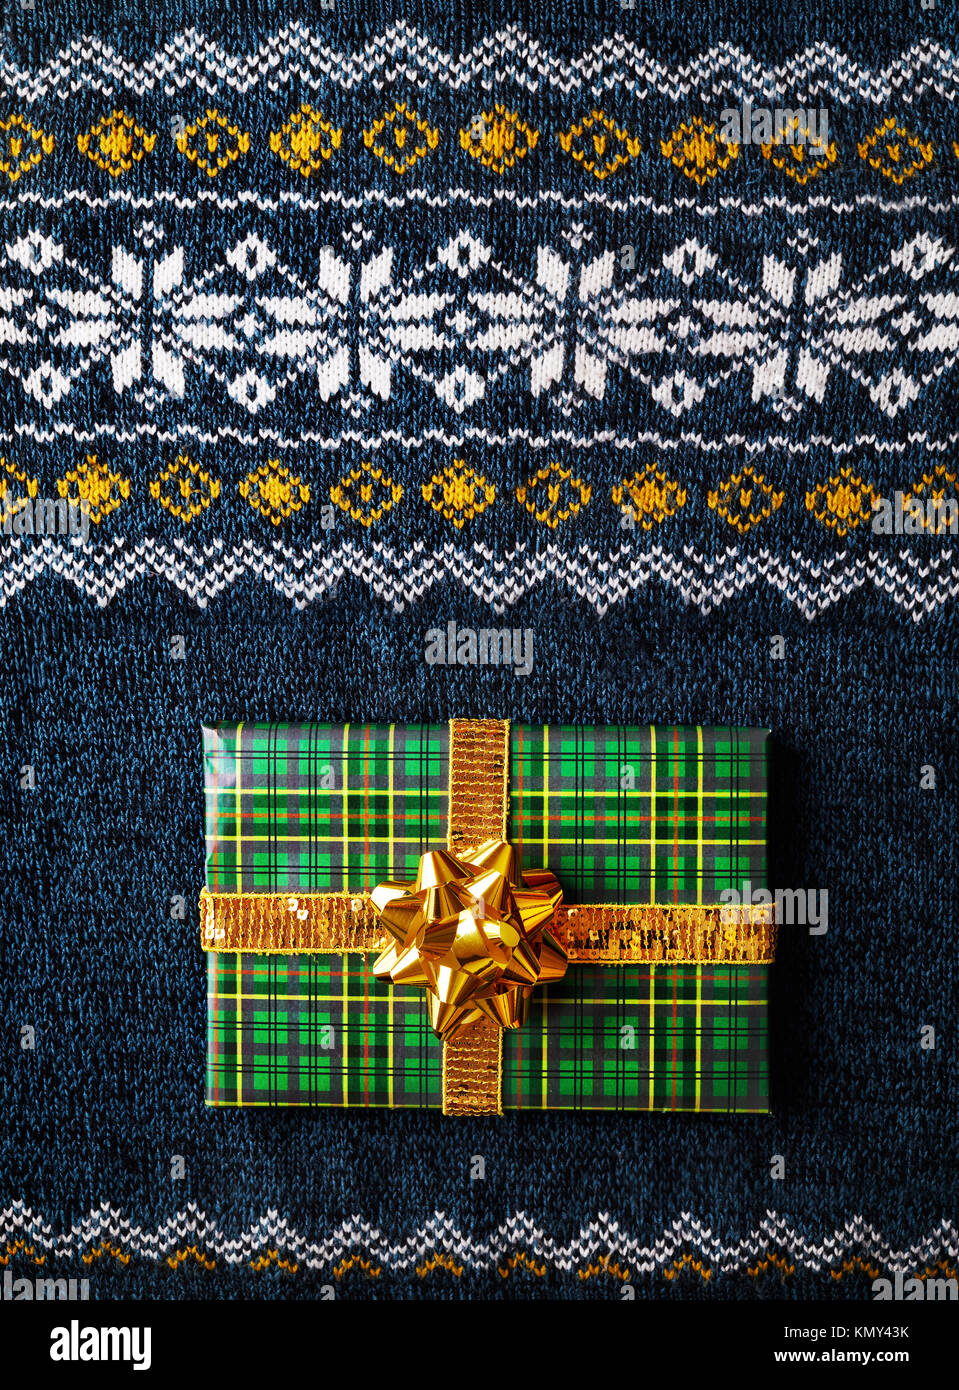 Green wrapped present with golden bow on man sweater at Christmas time - Stock Image